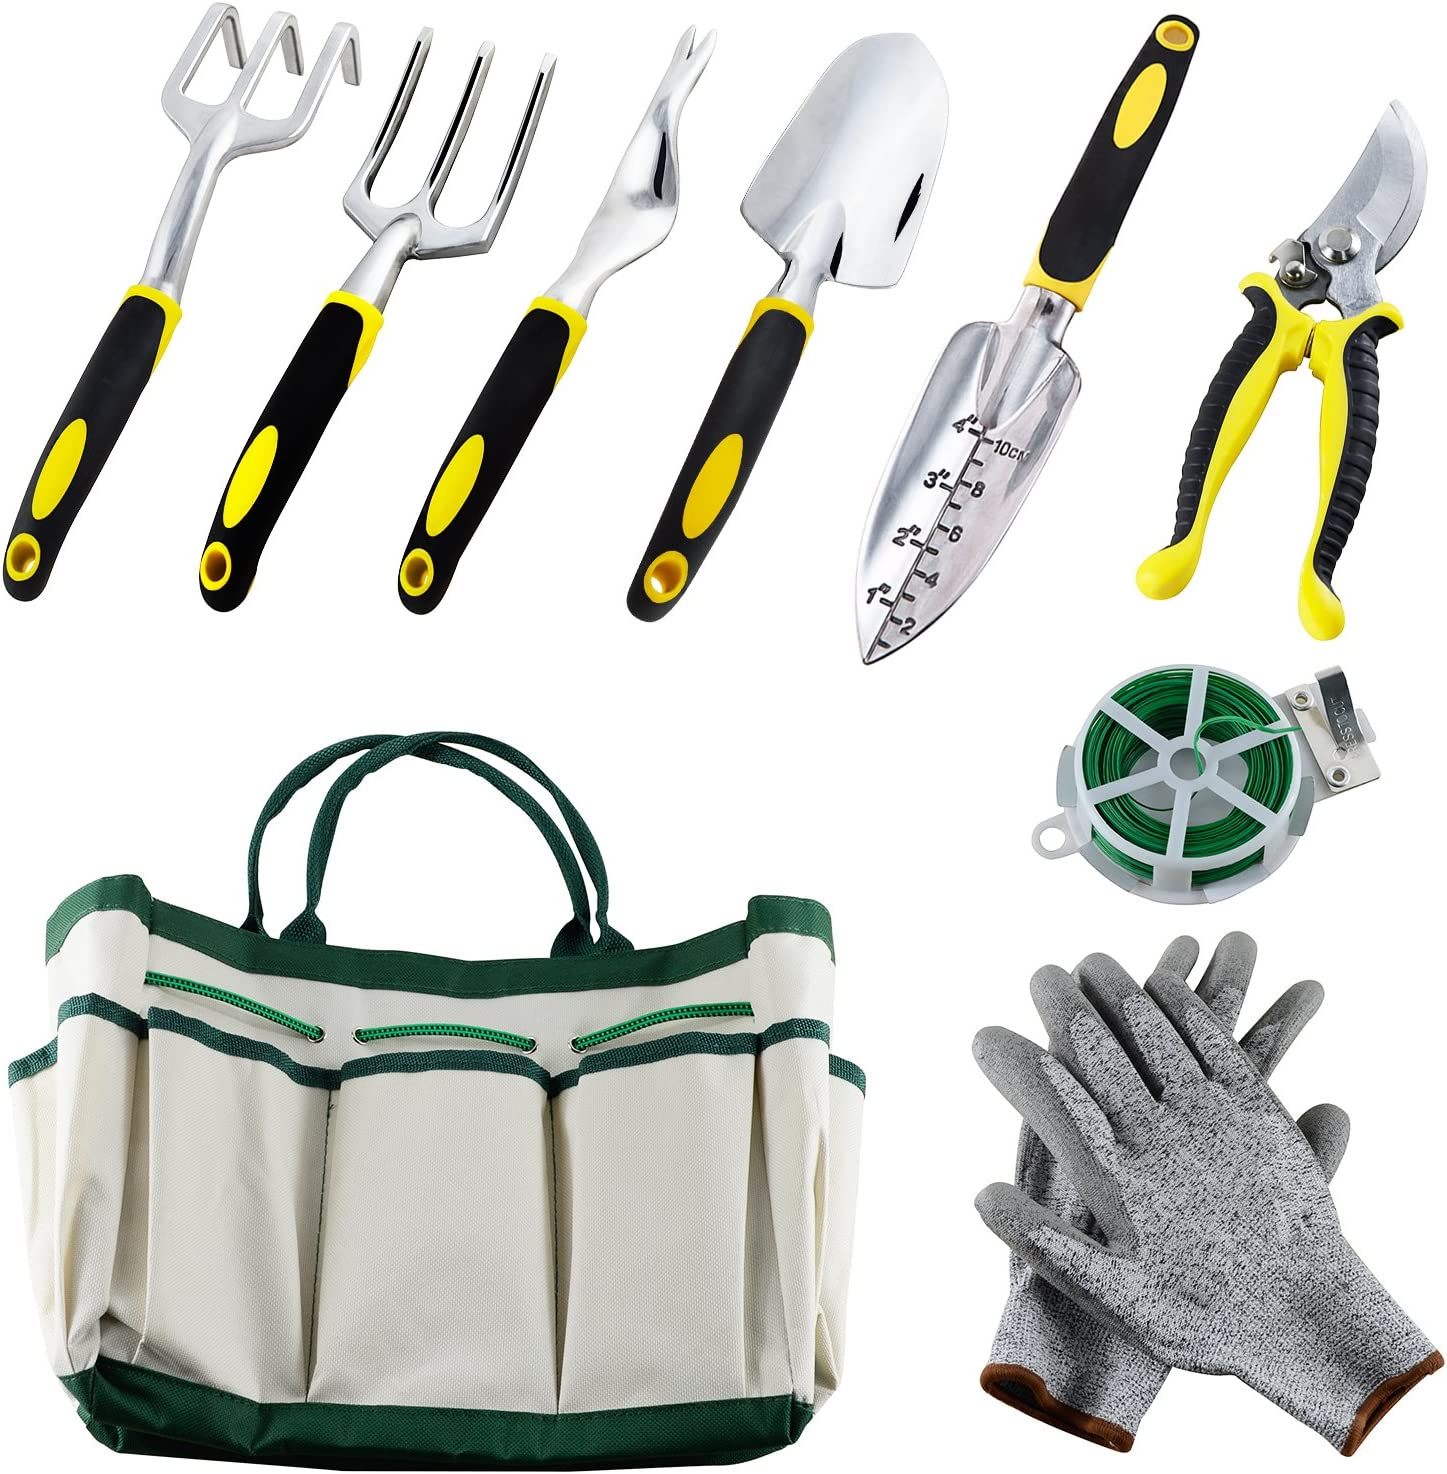 Auelife 9PC Garden Tools Set, Aluminum Alloy Hand Gardening Kit with a Plant Rope, Soft Gloves, a Garden Tote and Garden Tools with Non-Slip Handle